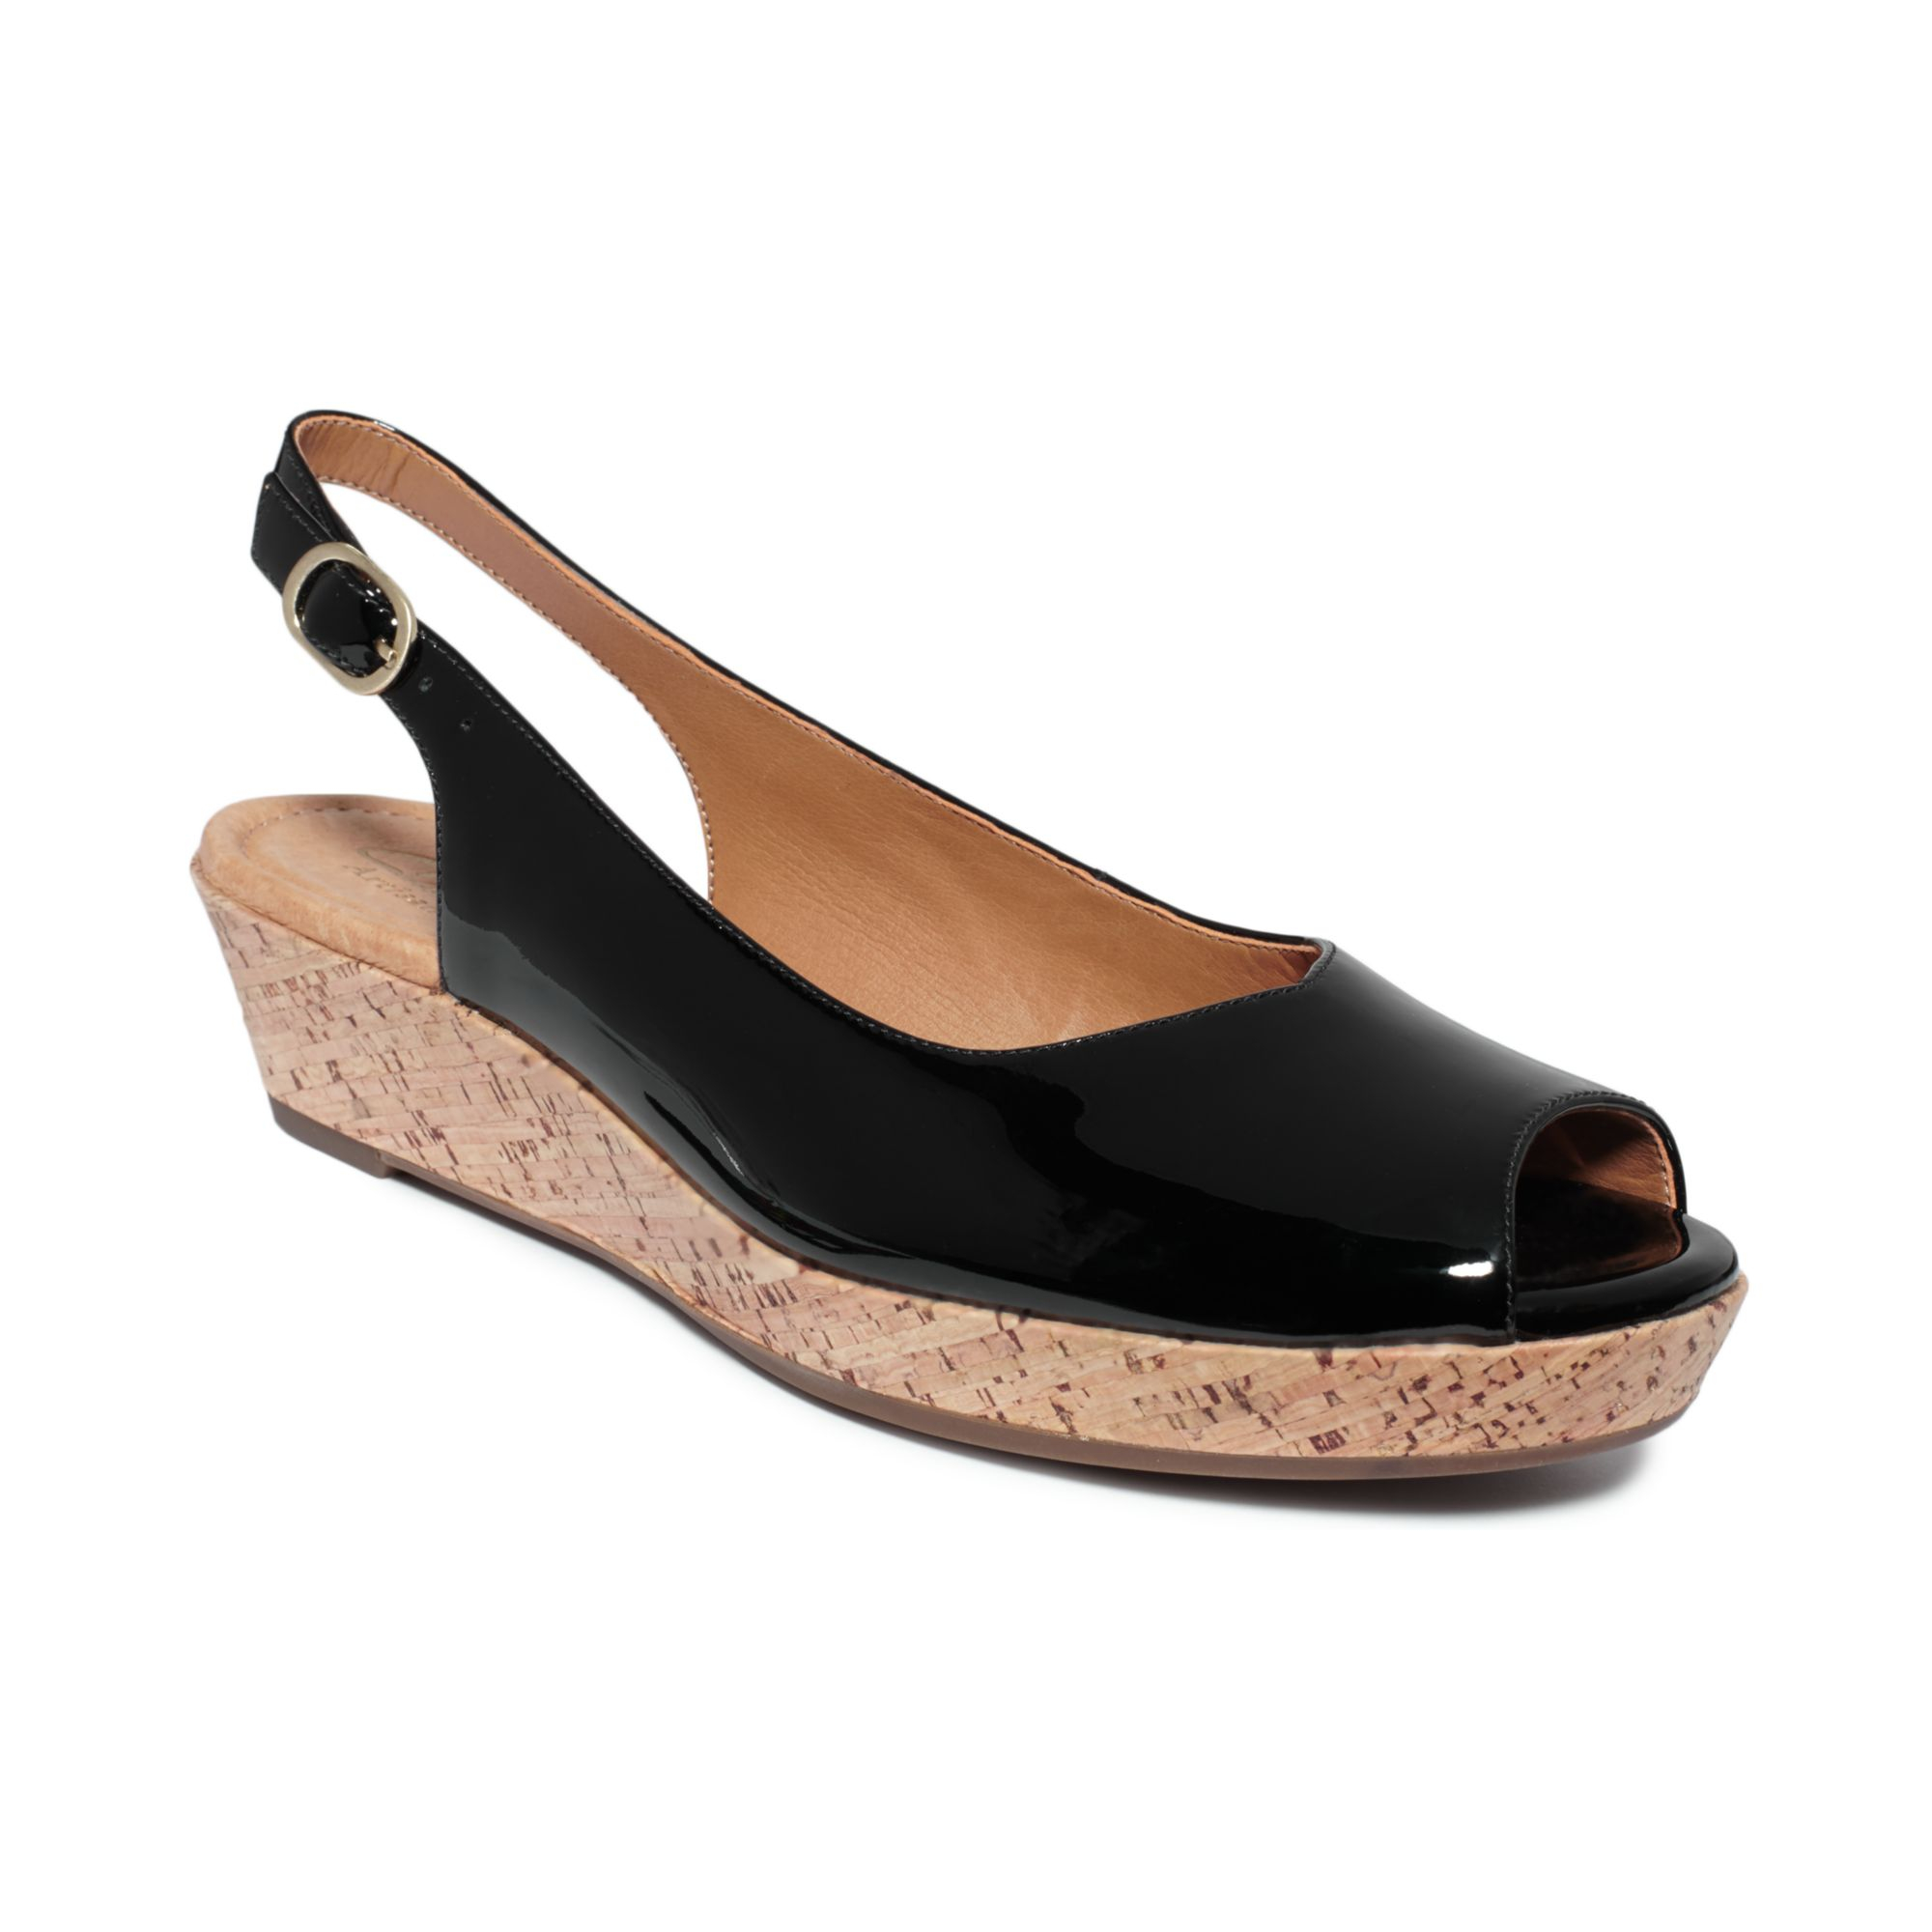 Popular Womens Platform Sandals Ankle Strap Embroidered Cork Heel Wedges Tan This Easy To Style And Wear Wedge Sandal Is Accented With A Slim Ankle Strap Thats Adjustable, An Open Toe Silhouette And Detailed Embroidered Wrapped